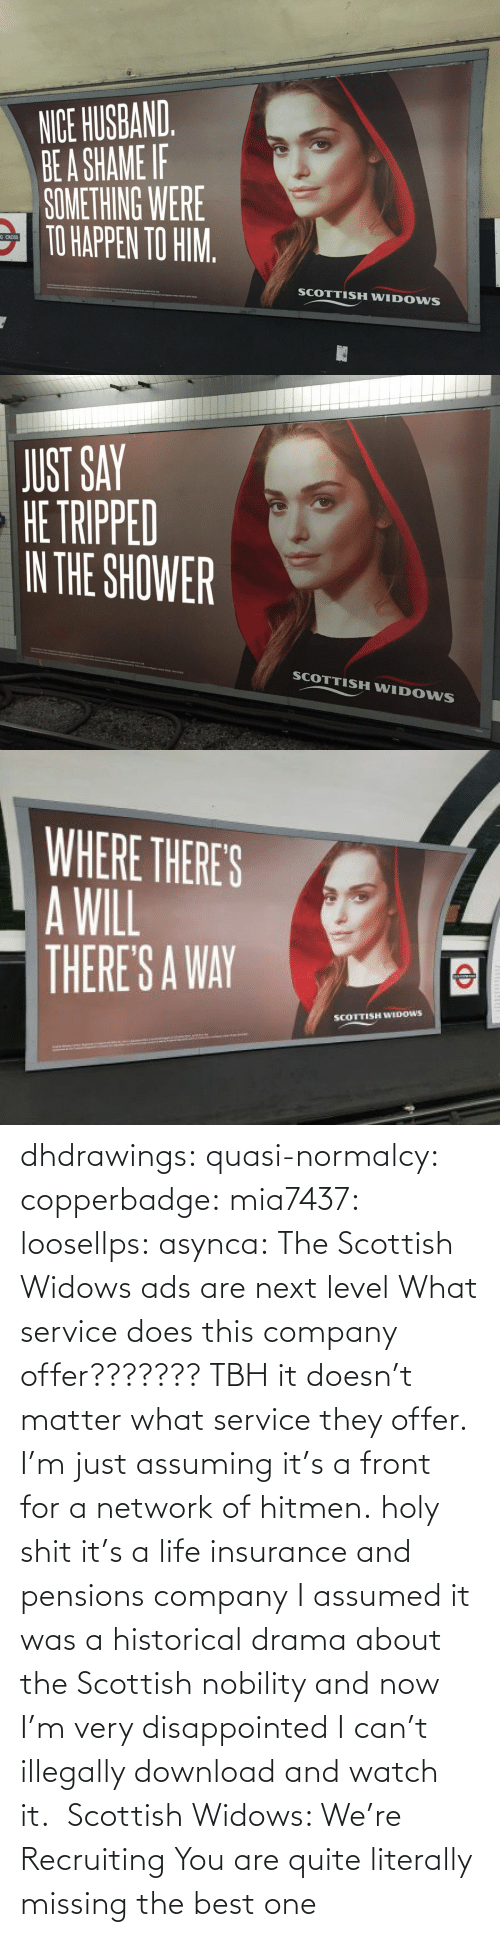 download: dhdrawings:  quasi-normalcy:  copperbadge:  mia7437:  loosellps:  asynca: The Scottish Widows ads are next level What service does this company offer??????? TBH it doesn't matter what service they offer. I'm just assuming it's a front for a network of hitmen.  holy shit it's a life insurance and pensions company  I assumed it was a historical drama about the Scottish nobility and now I'm very disappointed I can't illegally download and watch it.     Scottish Widows: We're Recruiting    You are quite literally missing the best one